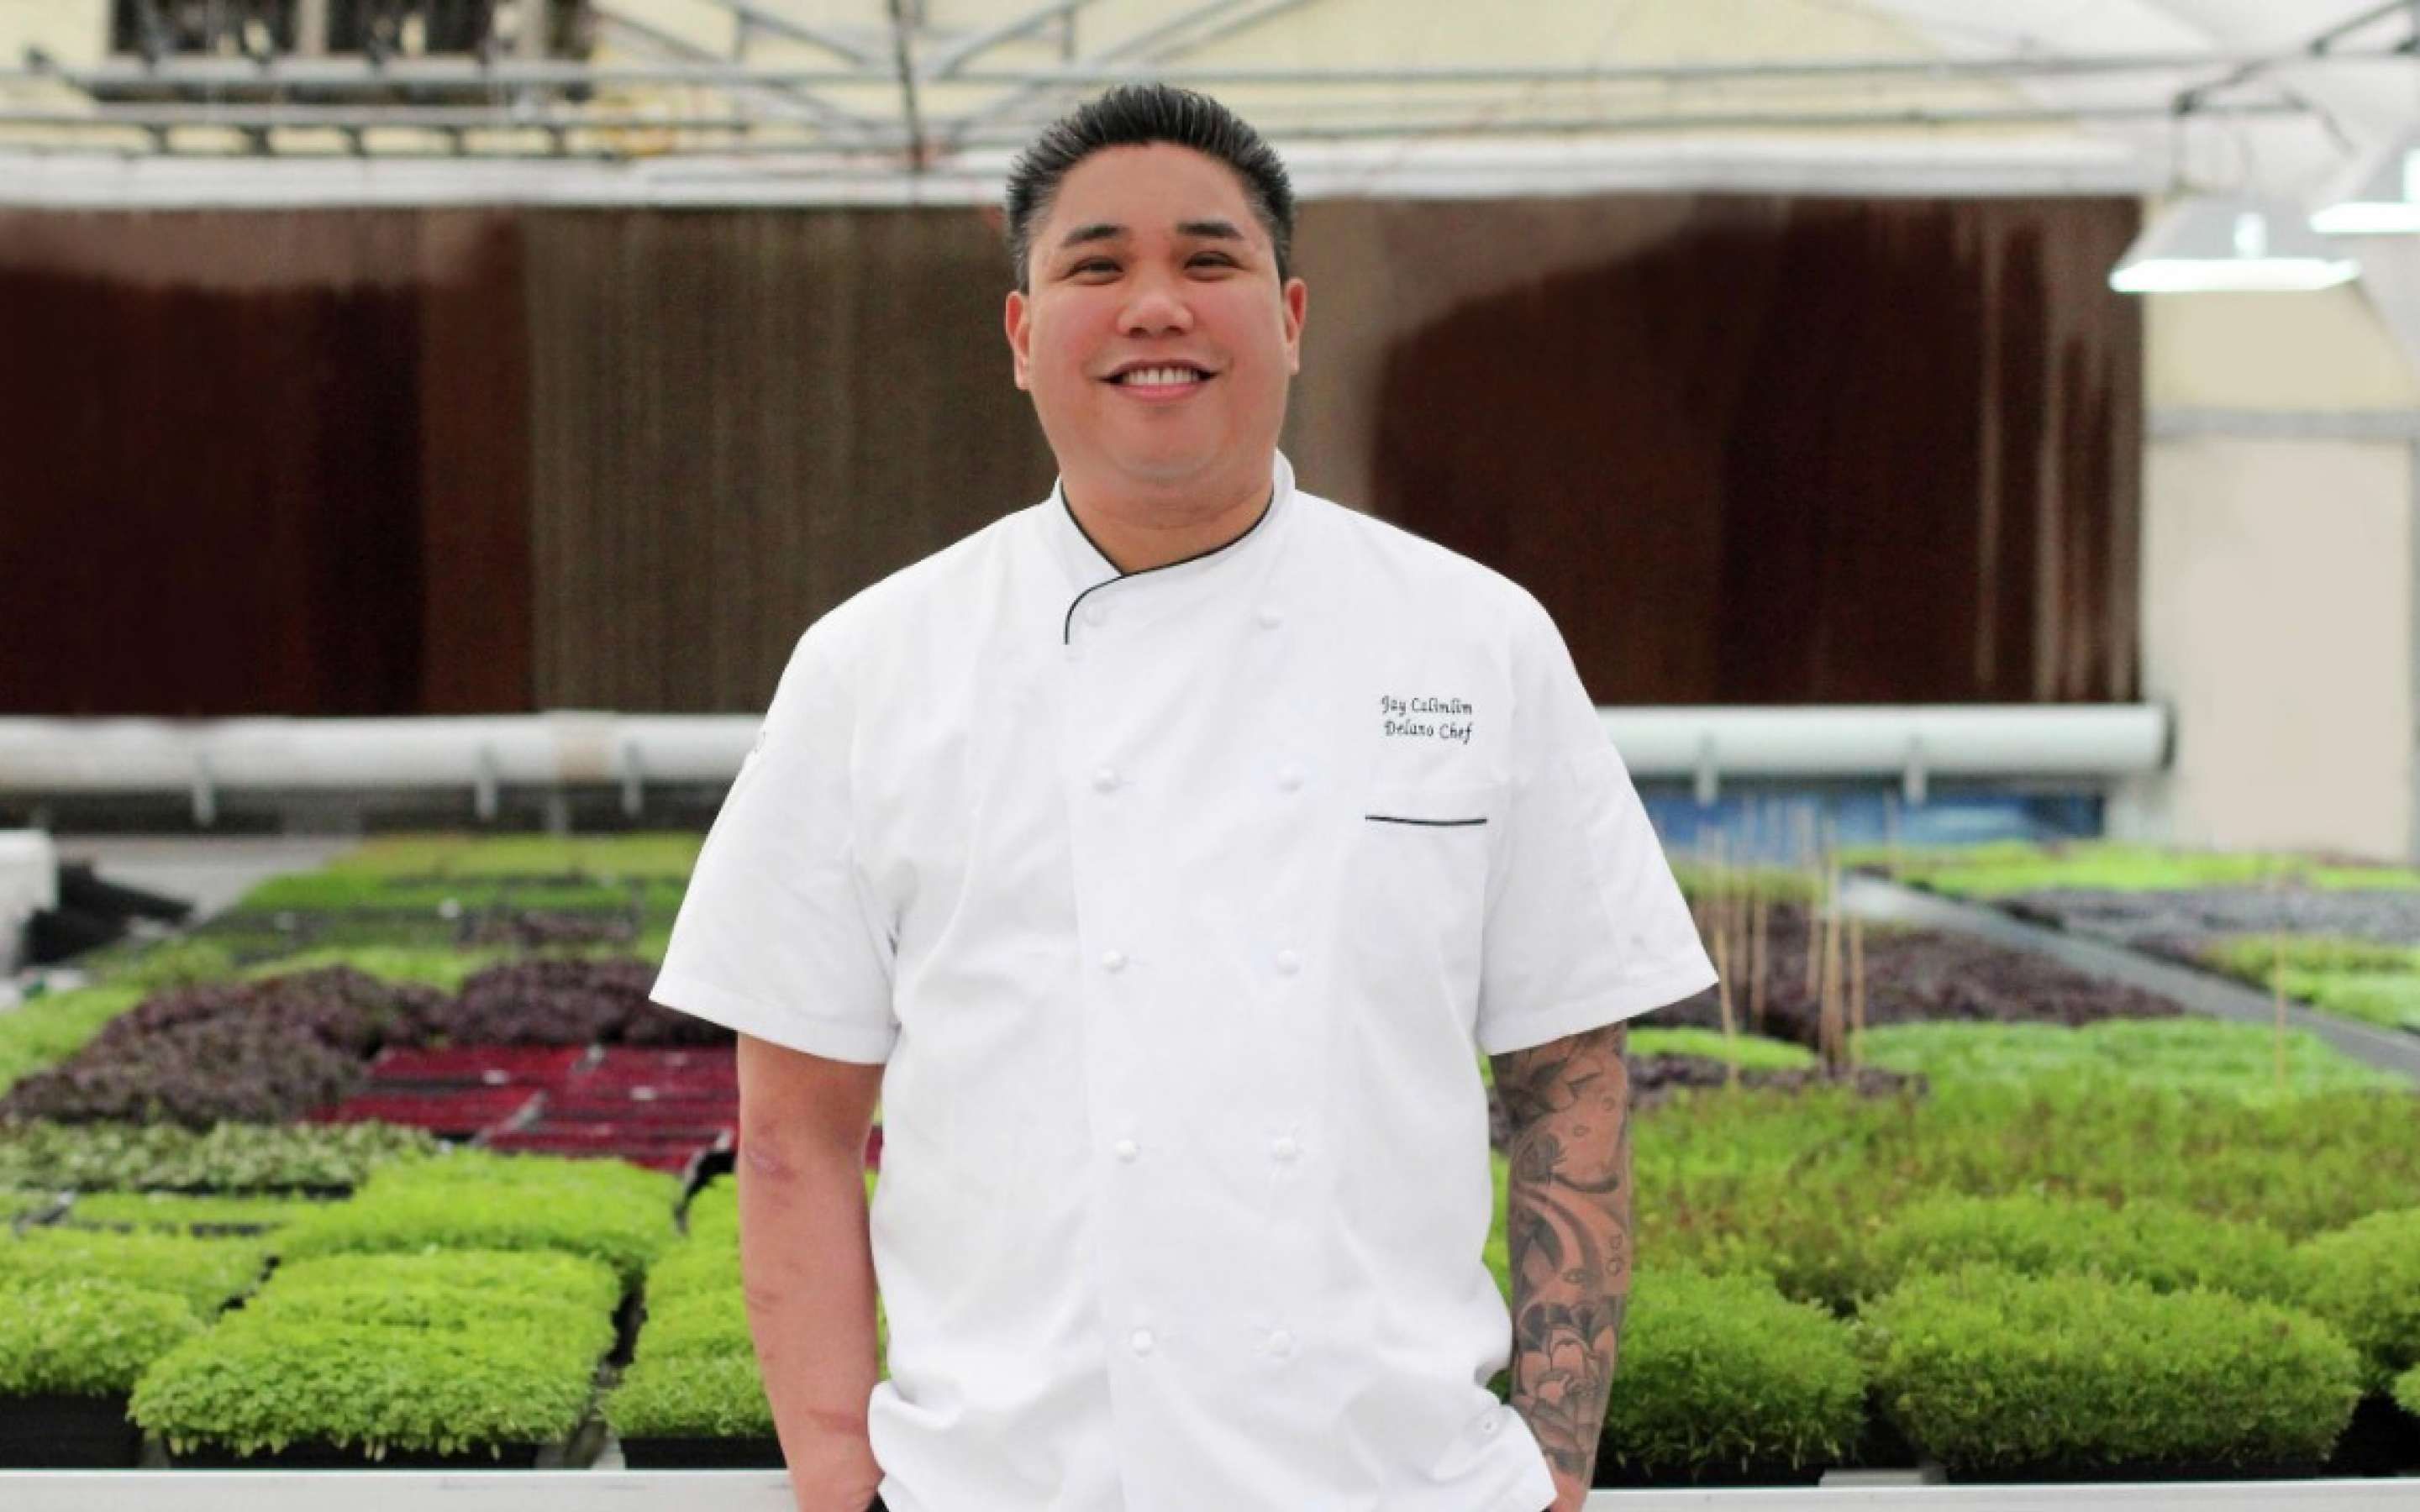 delano-las-vegas-restaurant-dellas-kitchen-chef-jay-calimlim